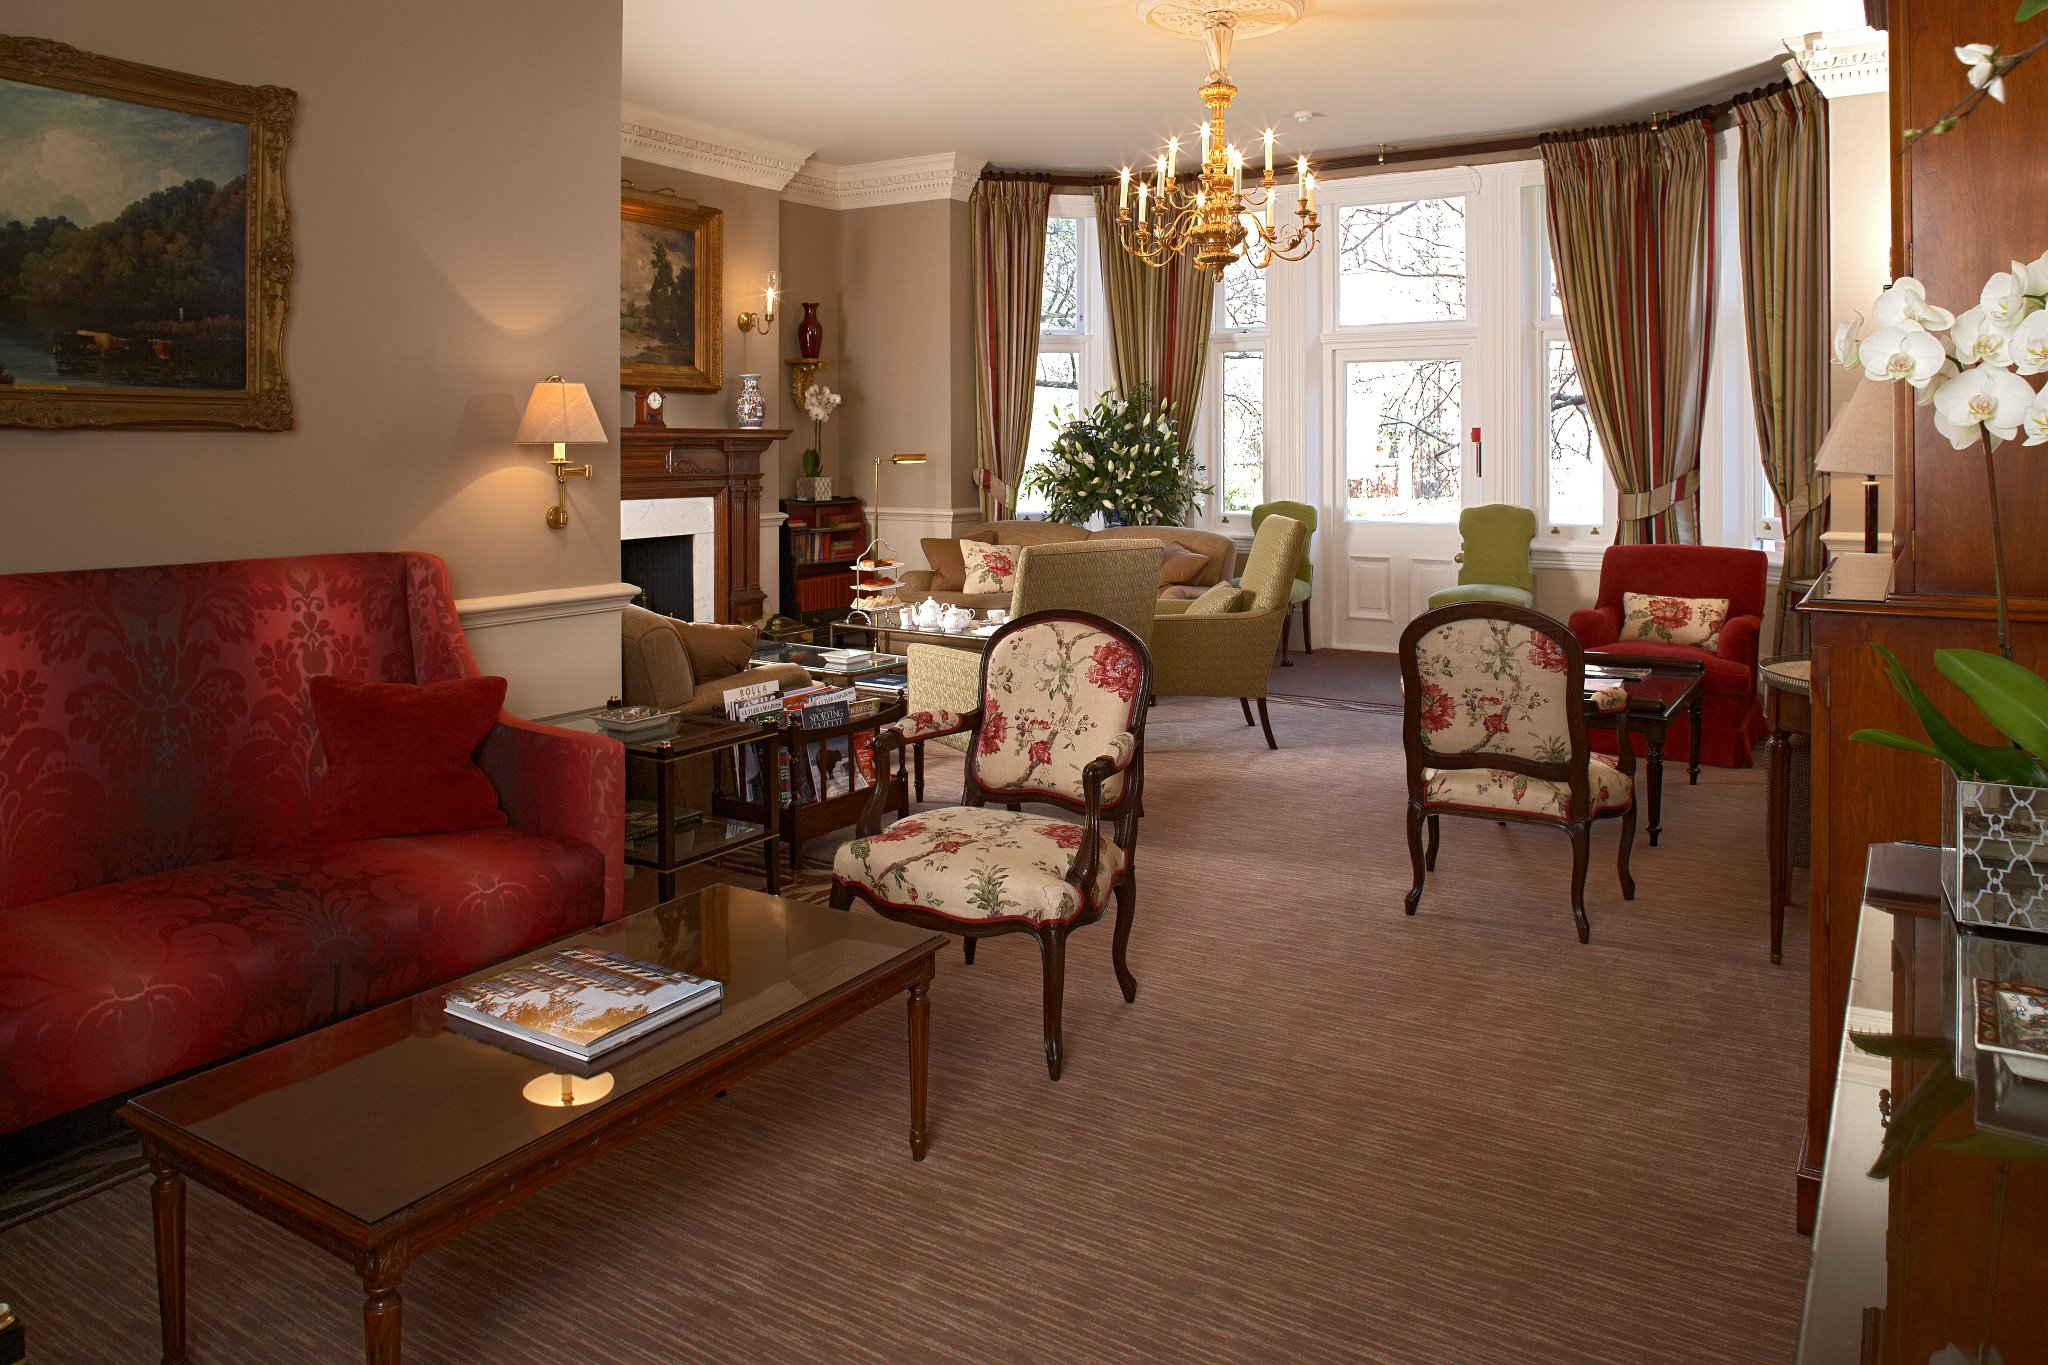 Draycott wins 39 england 39 s leading boutique hotel 39 at world for Leading small hotels